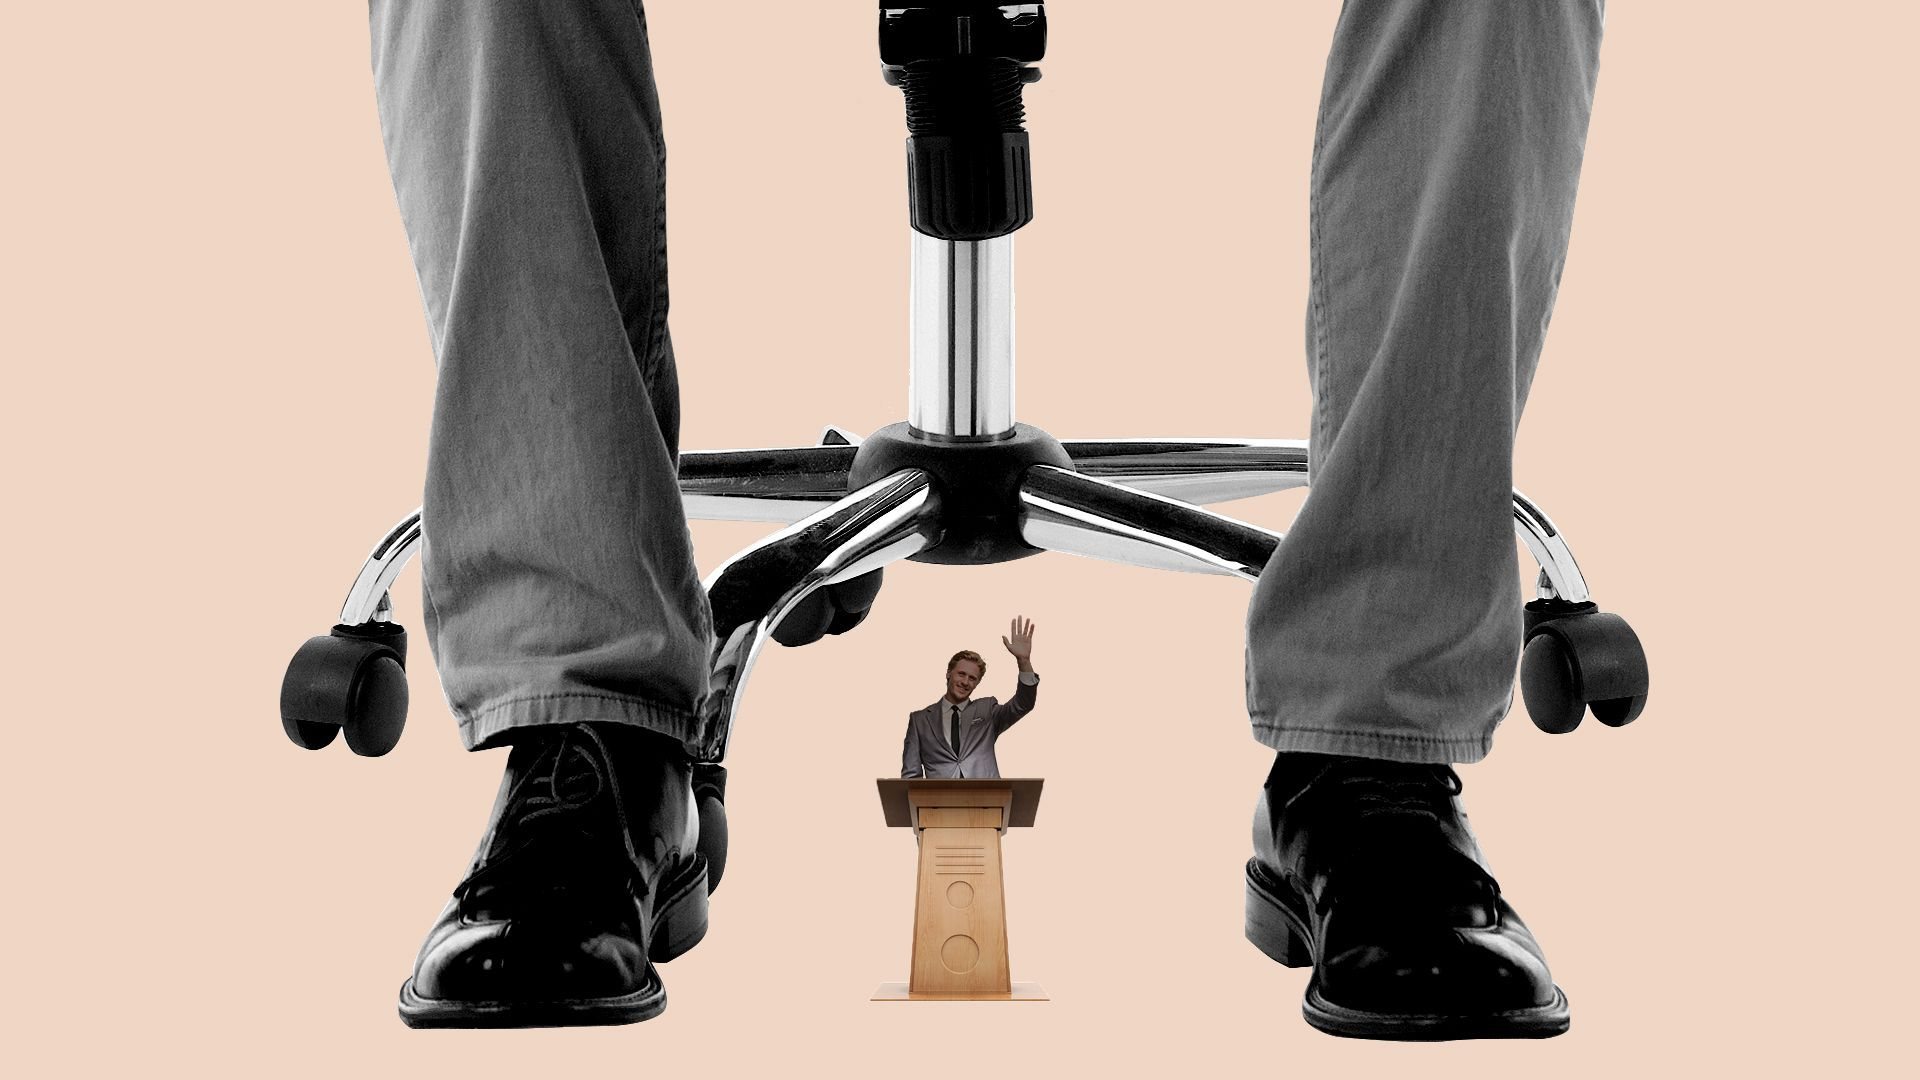 Illustration of politician under a chair